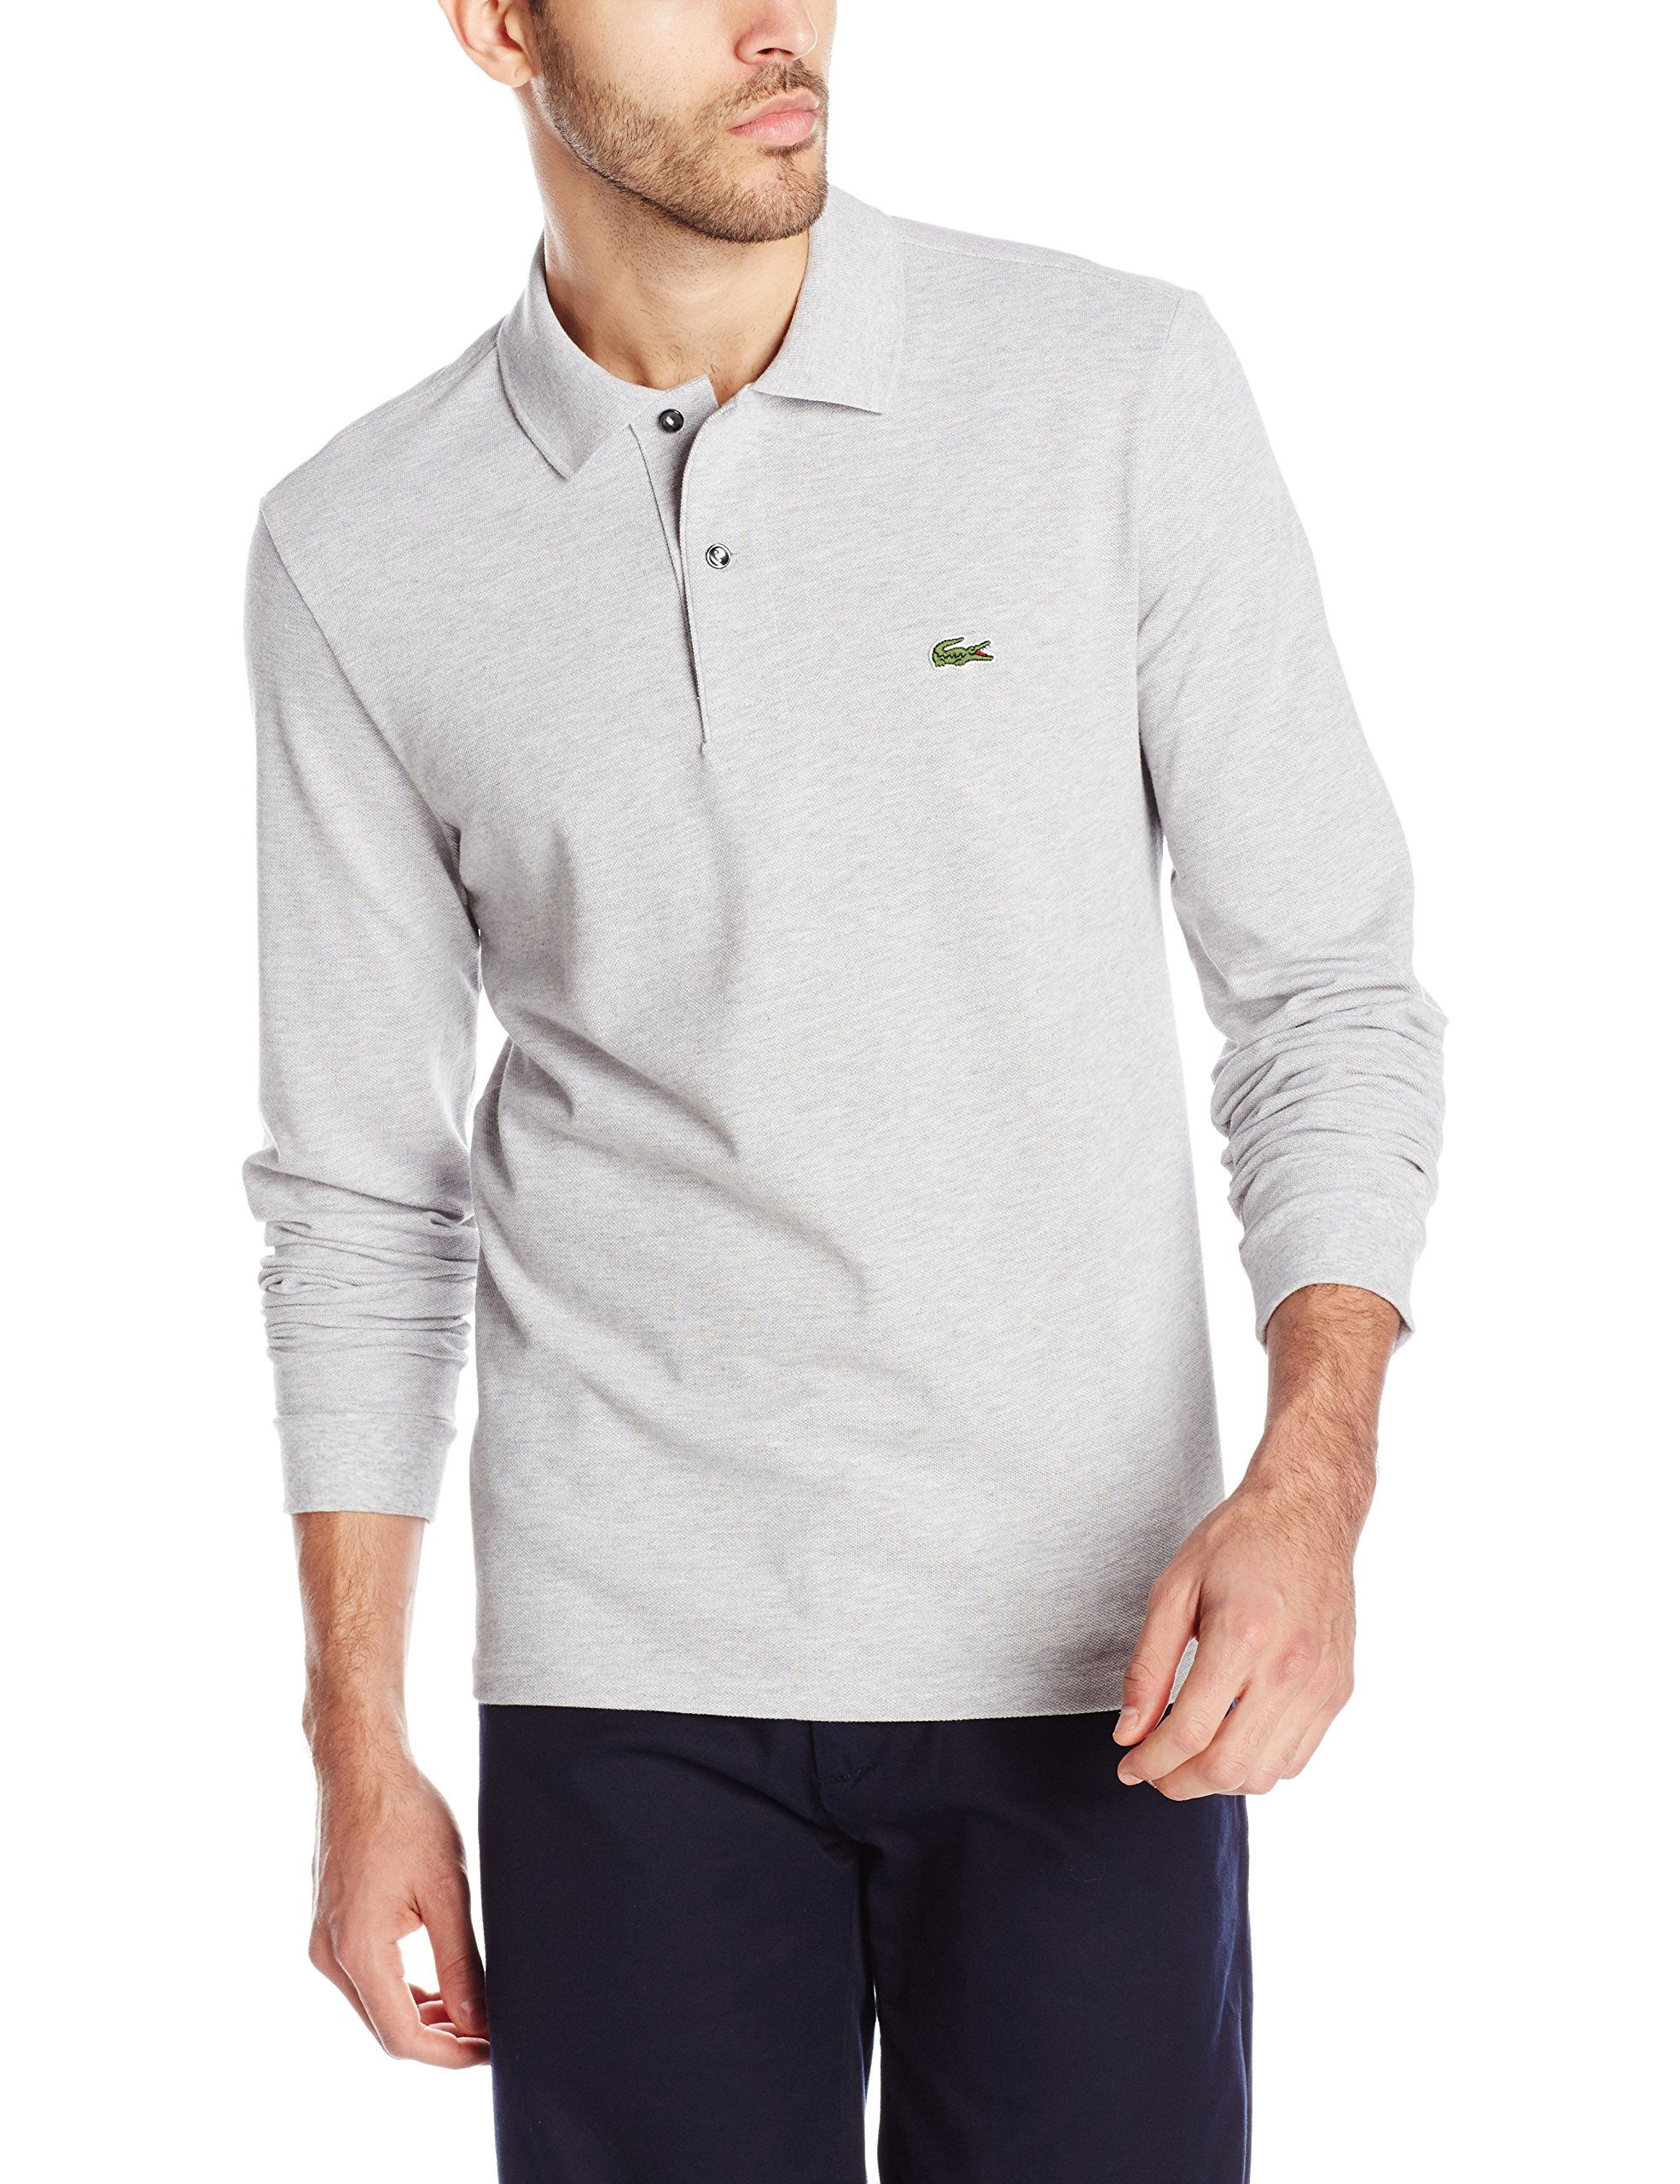 finest selection 7725d c5b80 Lacoste Men s Long Sleeve Chine Classic Pique L.12.12 Original Fit Polo  Shirt, Silver